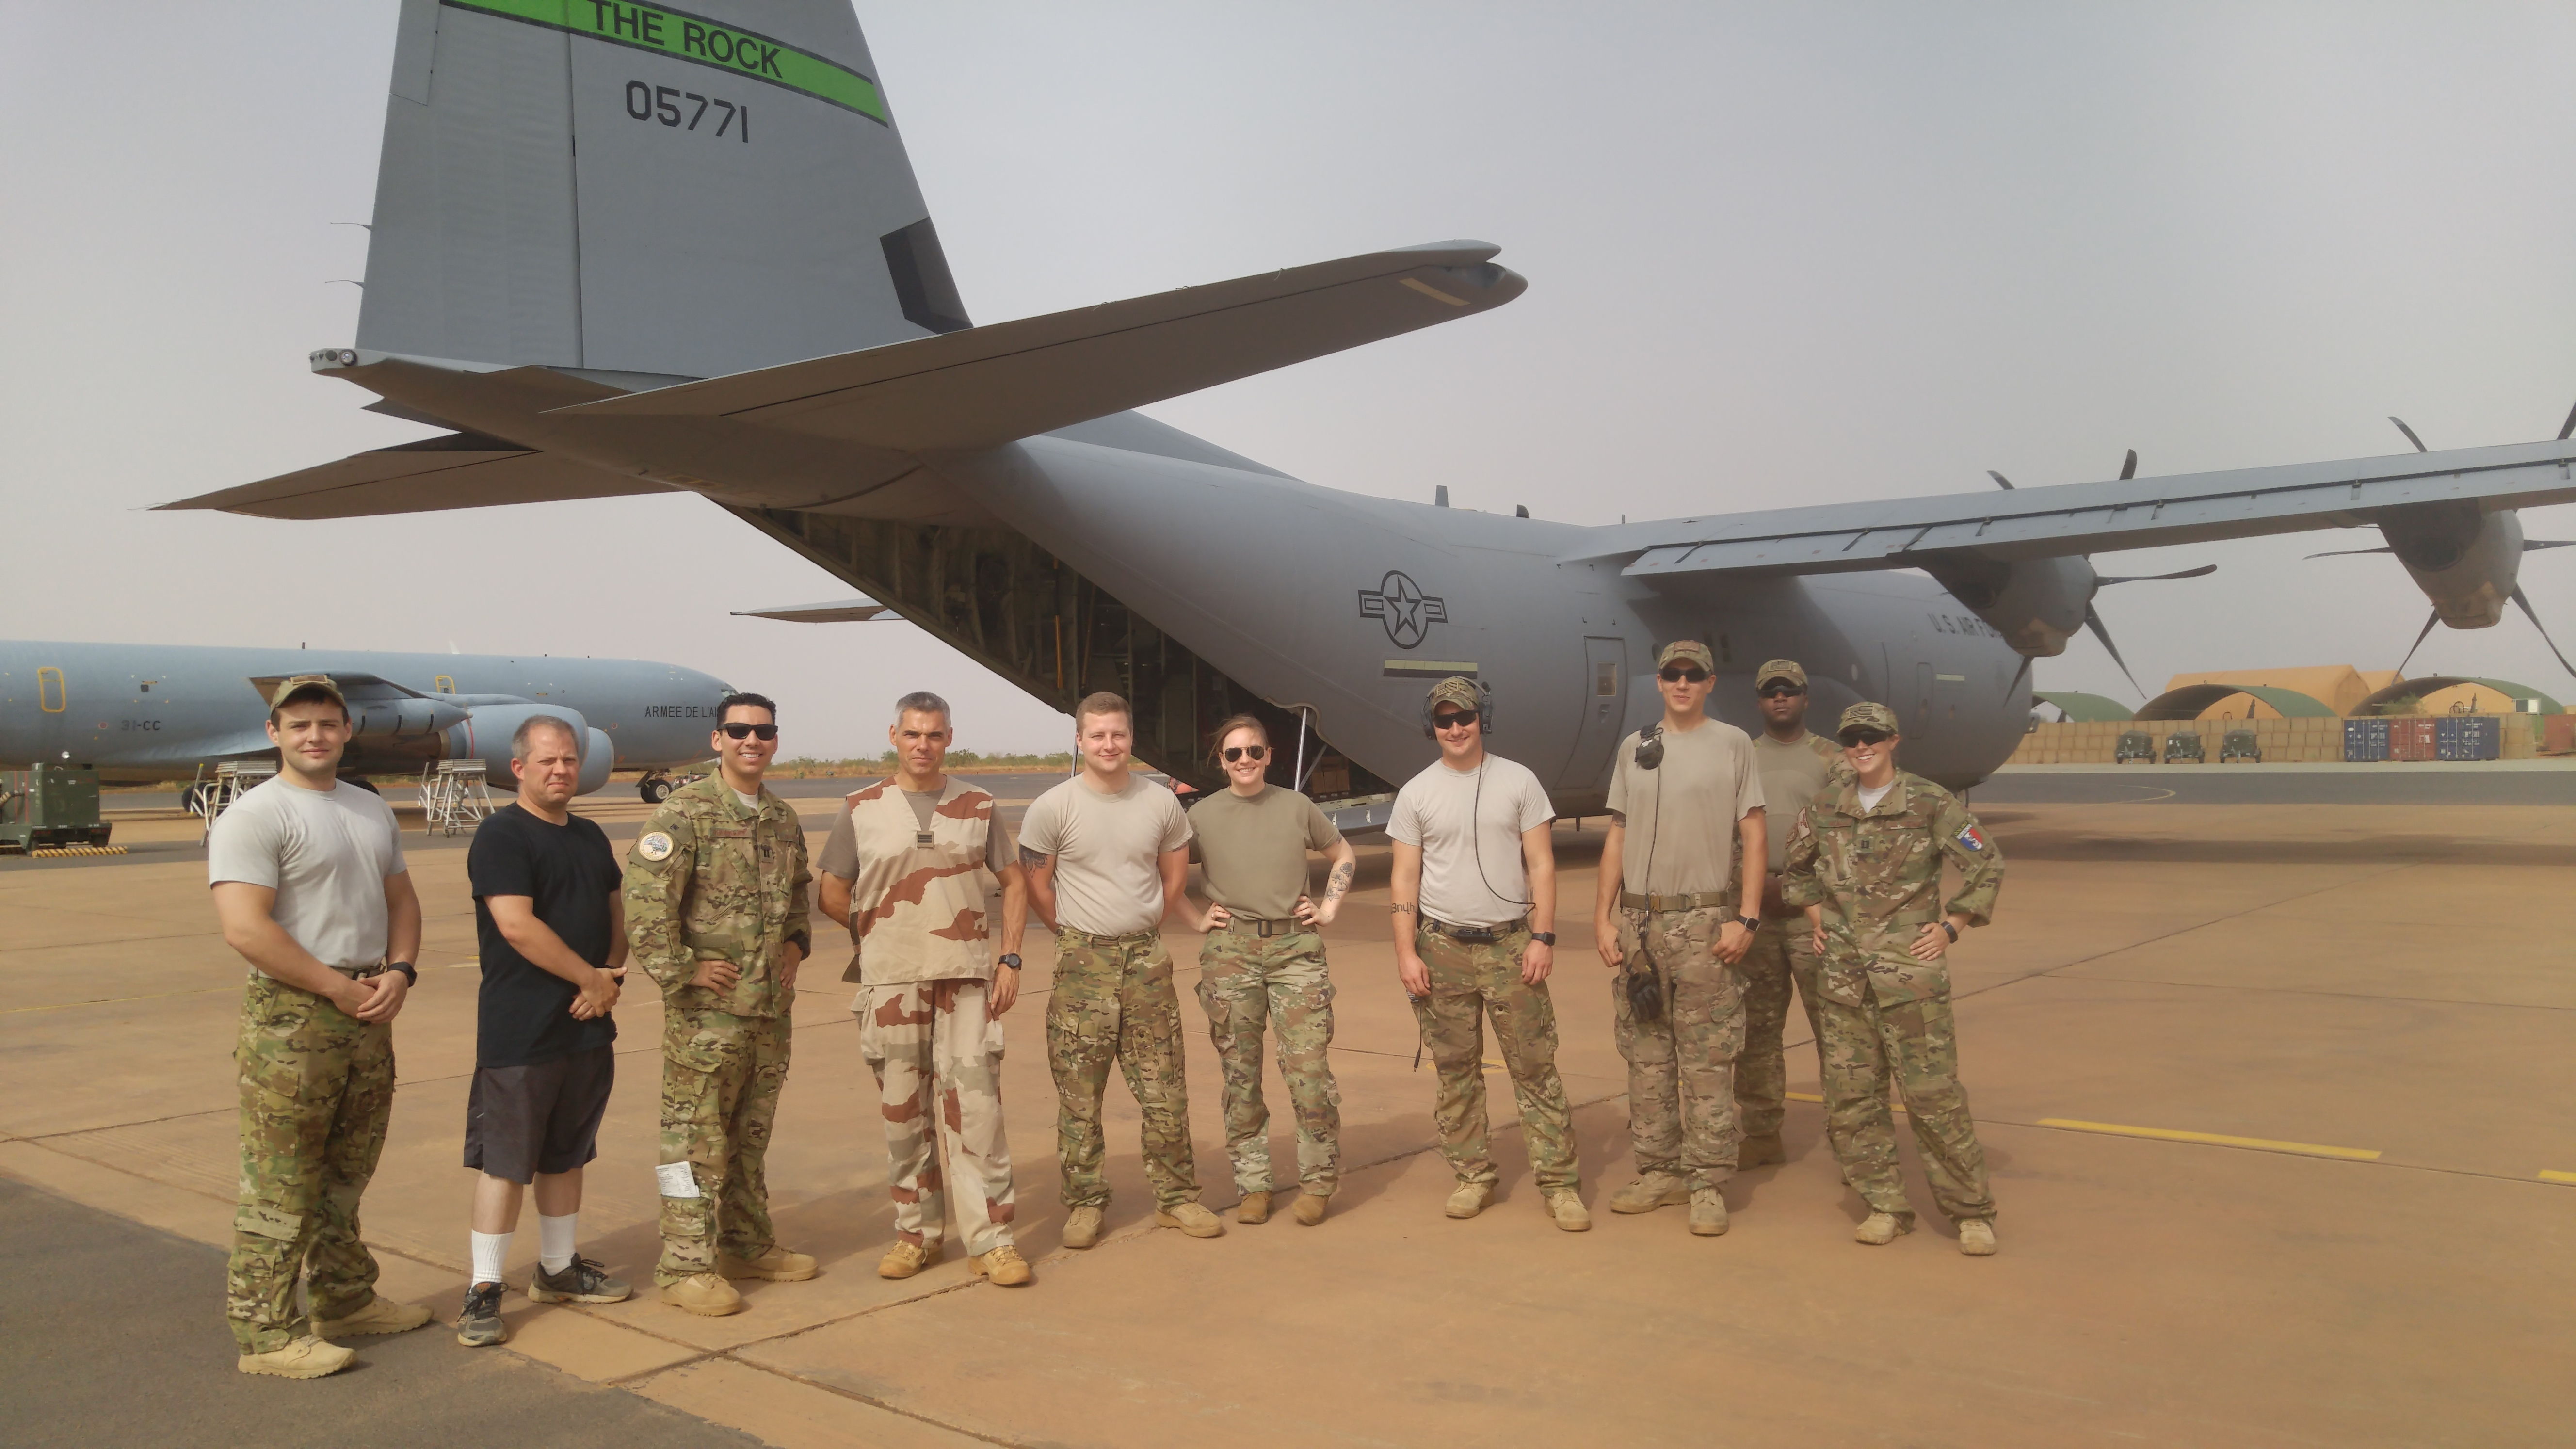 Soldiers from the 383rd Movement Control Team join U.S. Air Force and French allies for a group photo on a Chadian flight-line after working together to ensure cargo is safe and prepared to fly.  The 383rd MCT is the first MCT assigned to USARAF partnering with French allies and African partners to conduct inspections in Africa before departing on U.S. aircraft. (Photo courtesy of 383rd MCT).